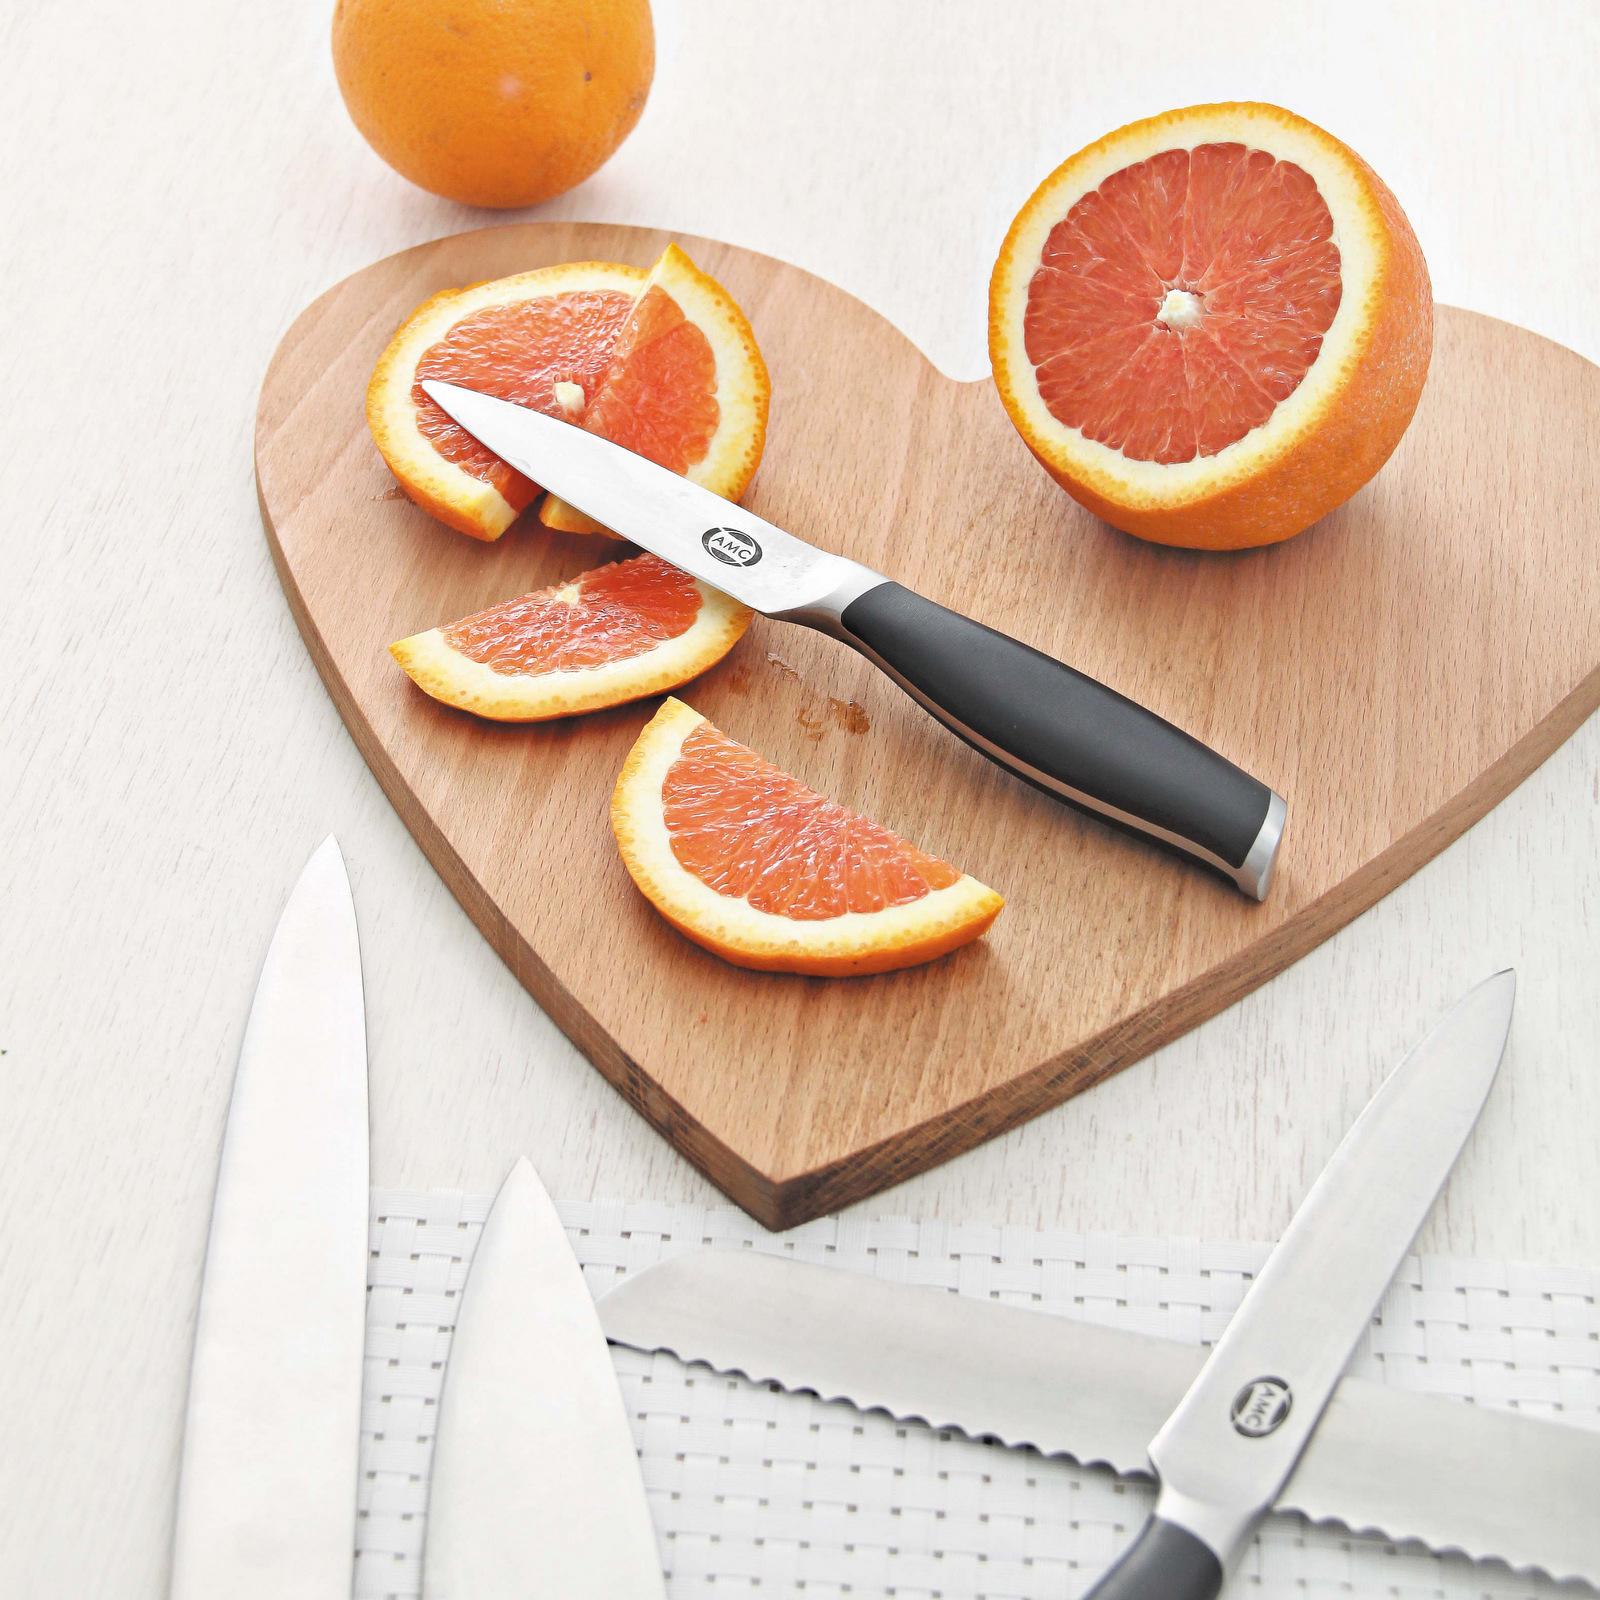 AMC Edge knives on cutting board with sliced orange.